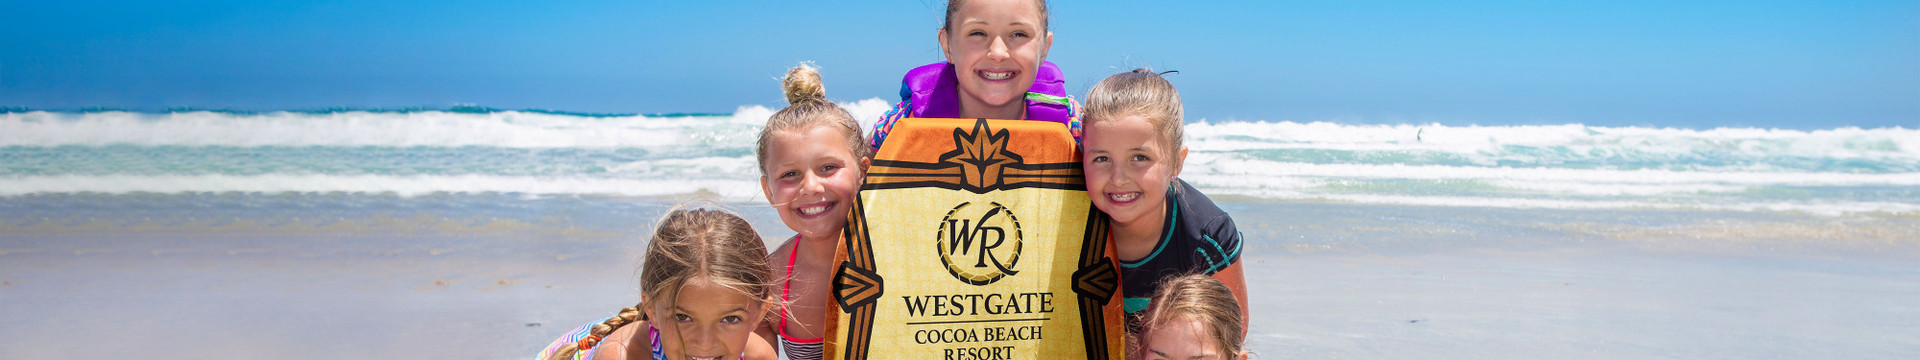 Great reviews for a luxury Cocoa Beach Hotel Resort in Cocoa Beach, FL | Westgate Cocoa Beach Resort